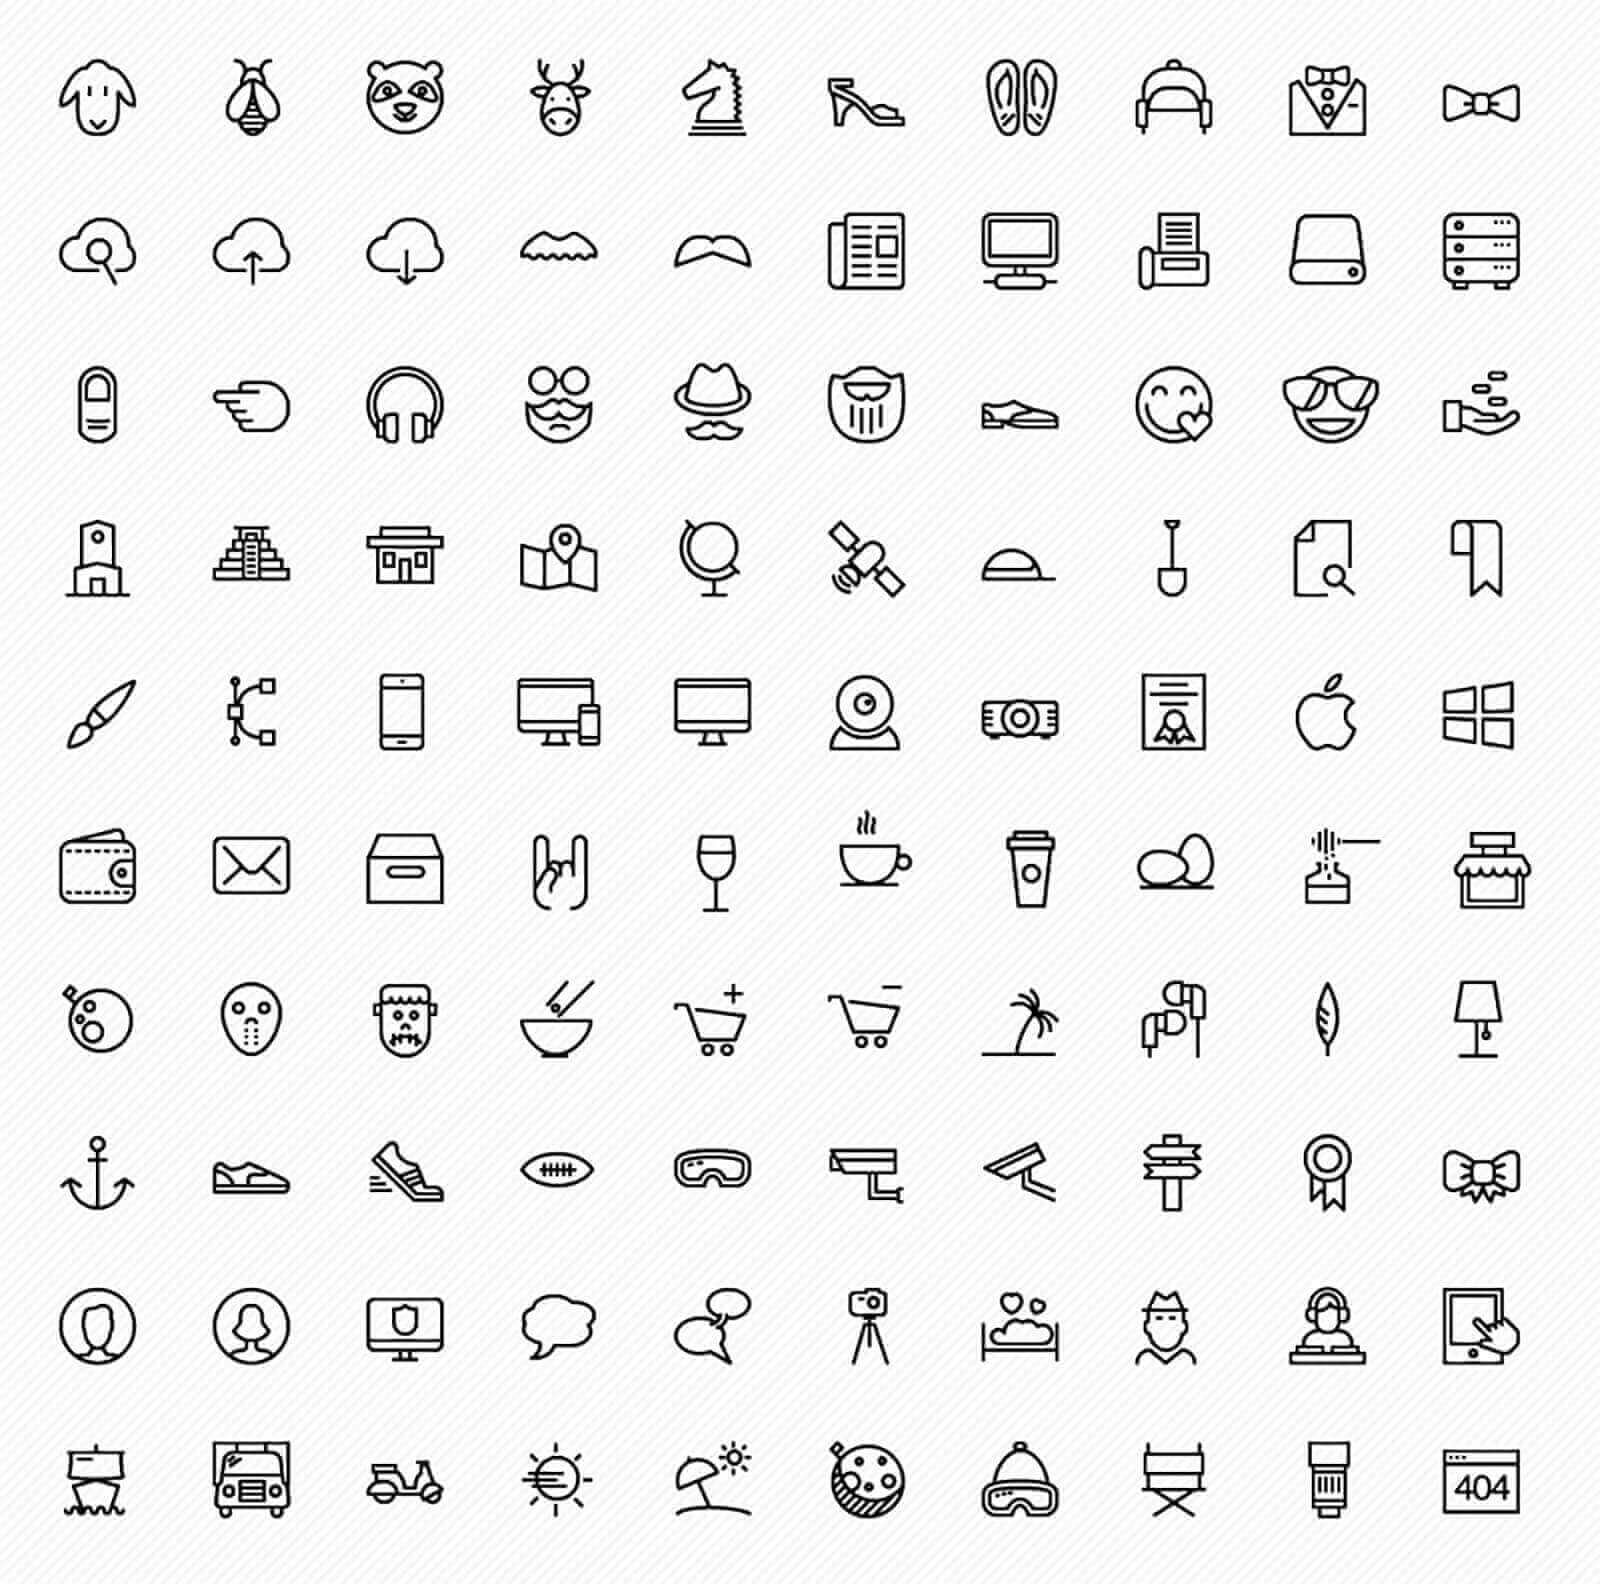 Free icons pack